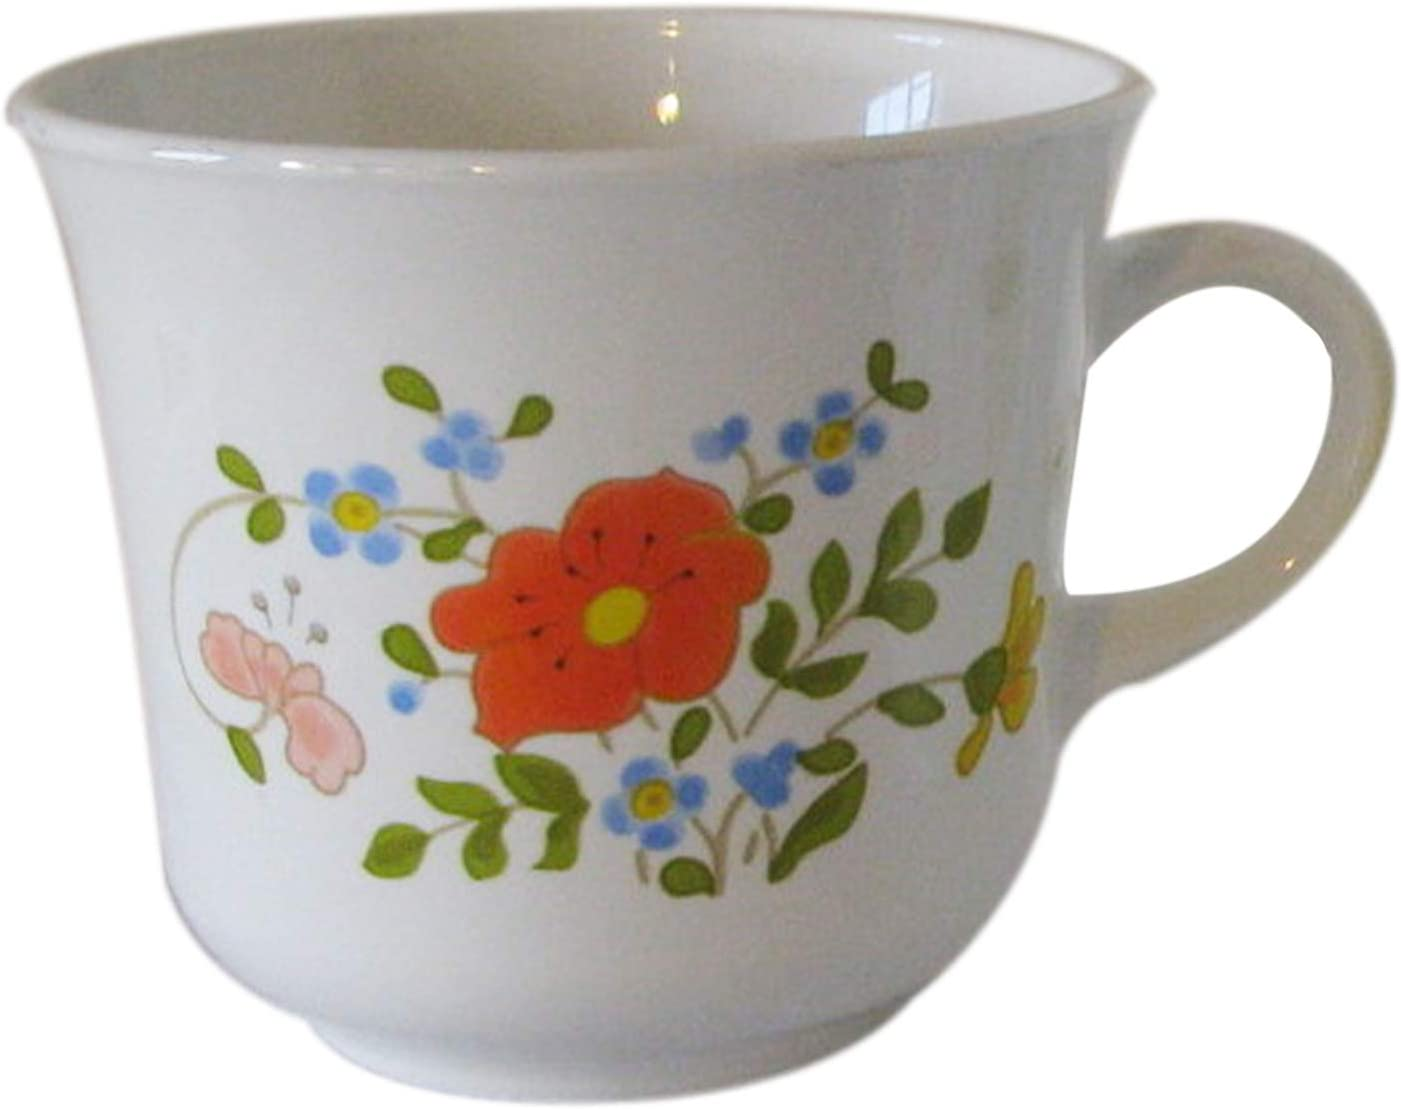 Corelle Expressions Mug Coffee Cup Wildflower Aka Spring Bouquet Kitchen Dining